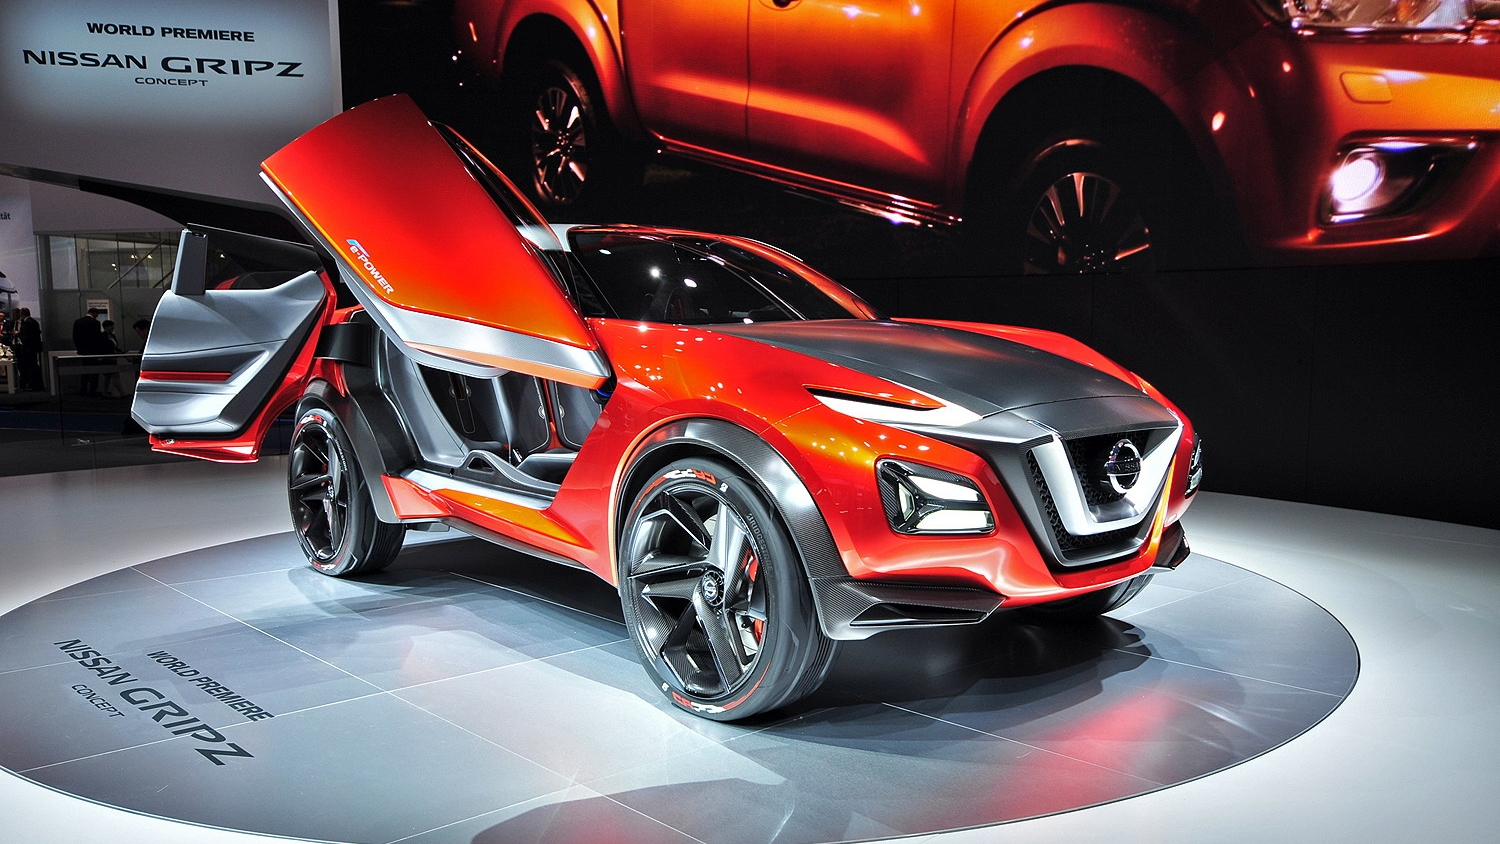 Car Show 2015 >> 2016 Nissan Gripz Concept | Top Speed